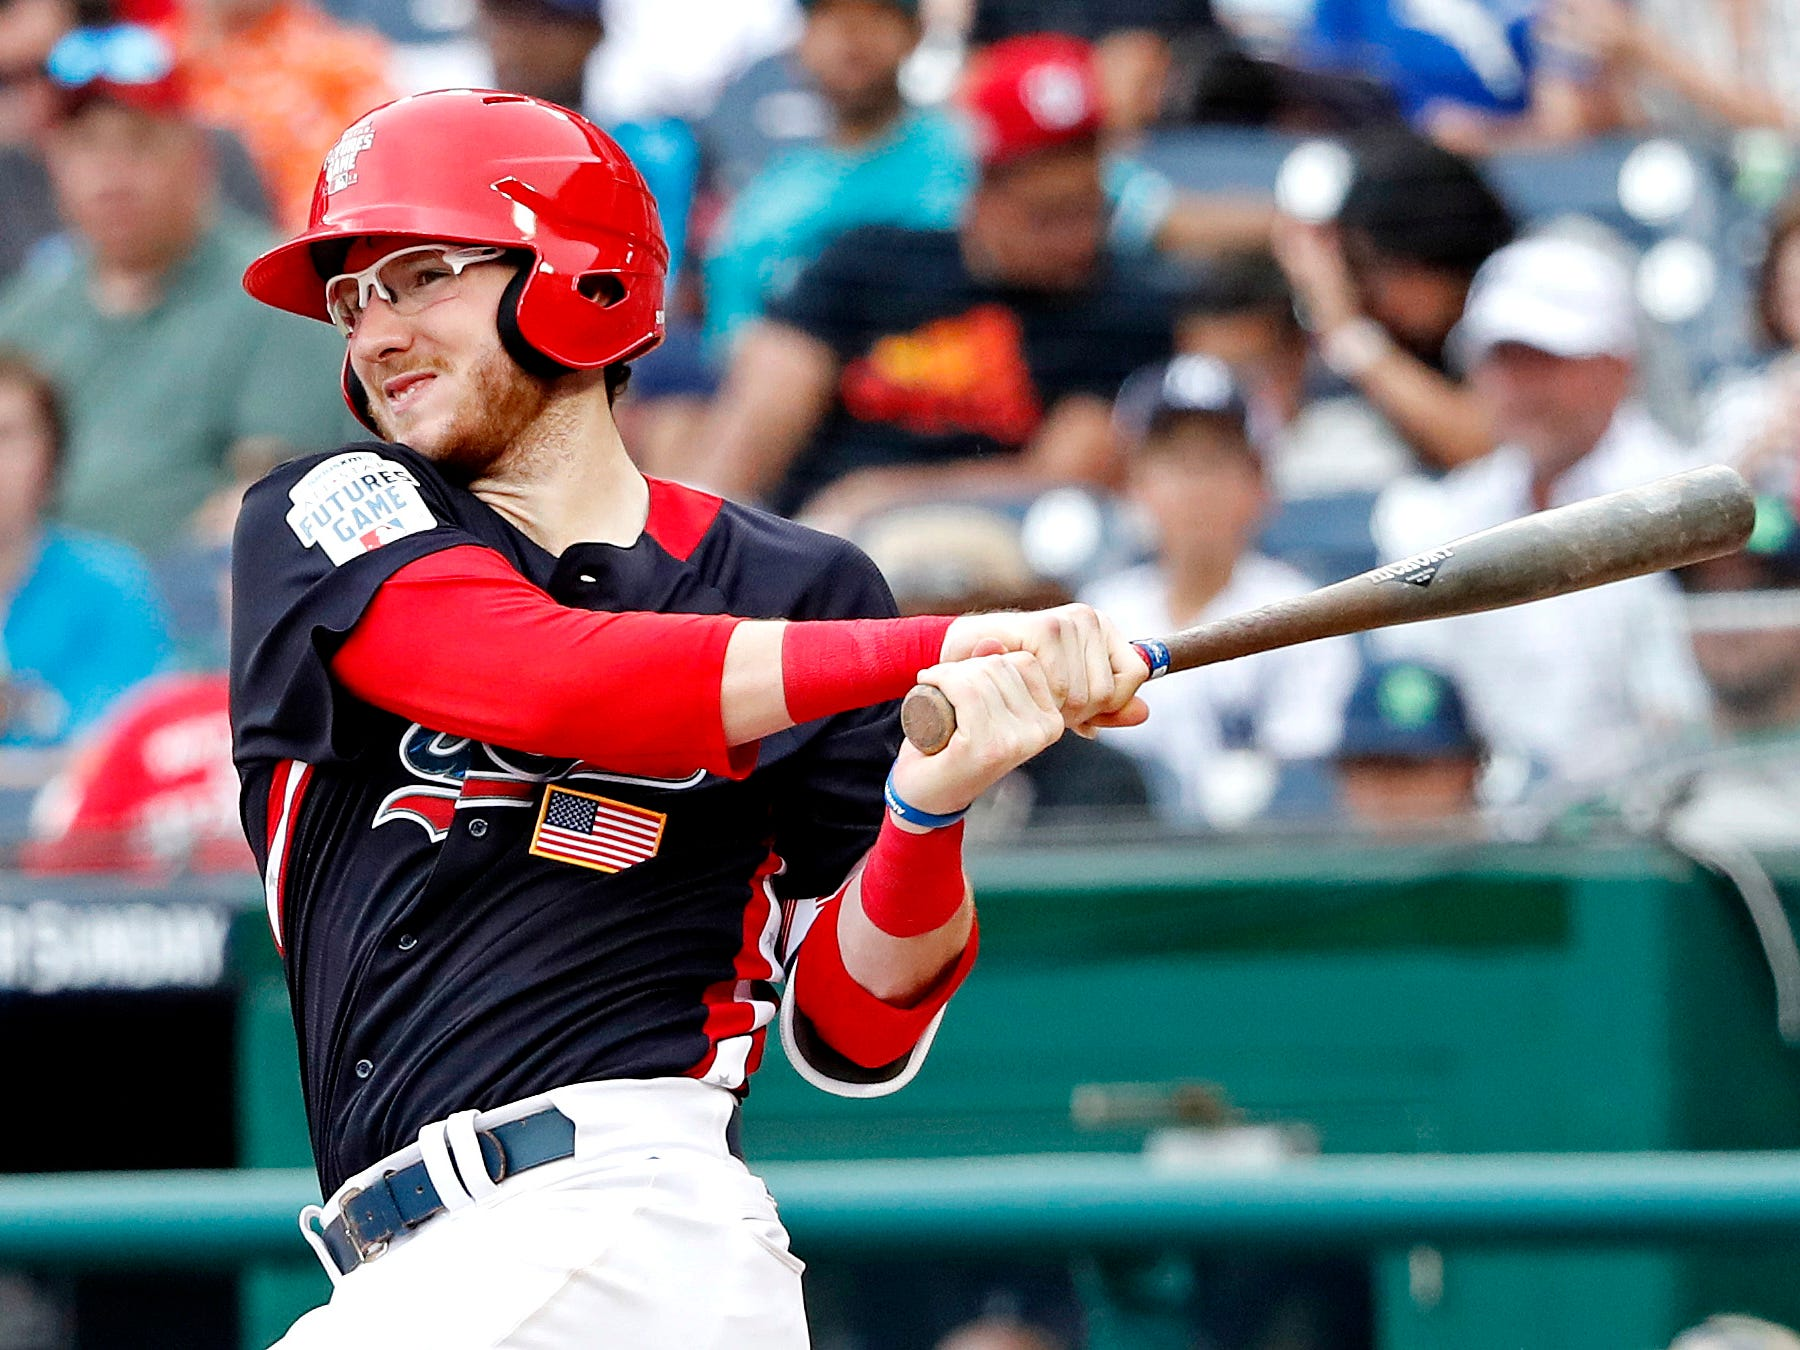 Jul 15, 2018; Washington, DC, USA; USA catcher Danny Jansen (9) hits a two run home run during the forth inning against the World Team during the 2018 All Star Futures Game at Nationals Ballpark. Mandatory Credit: Geoff Burke-USA TODAY Sports